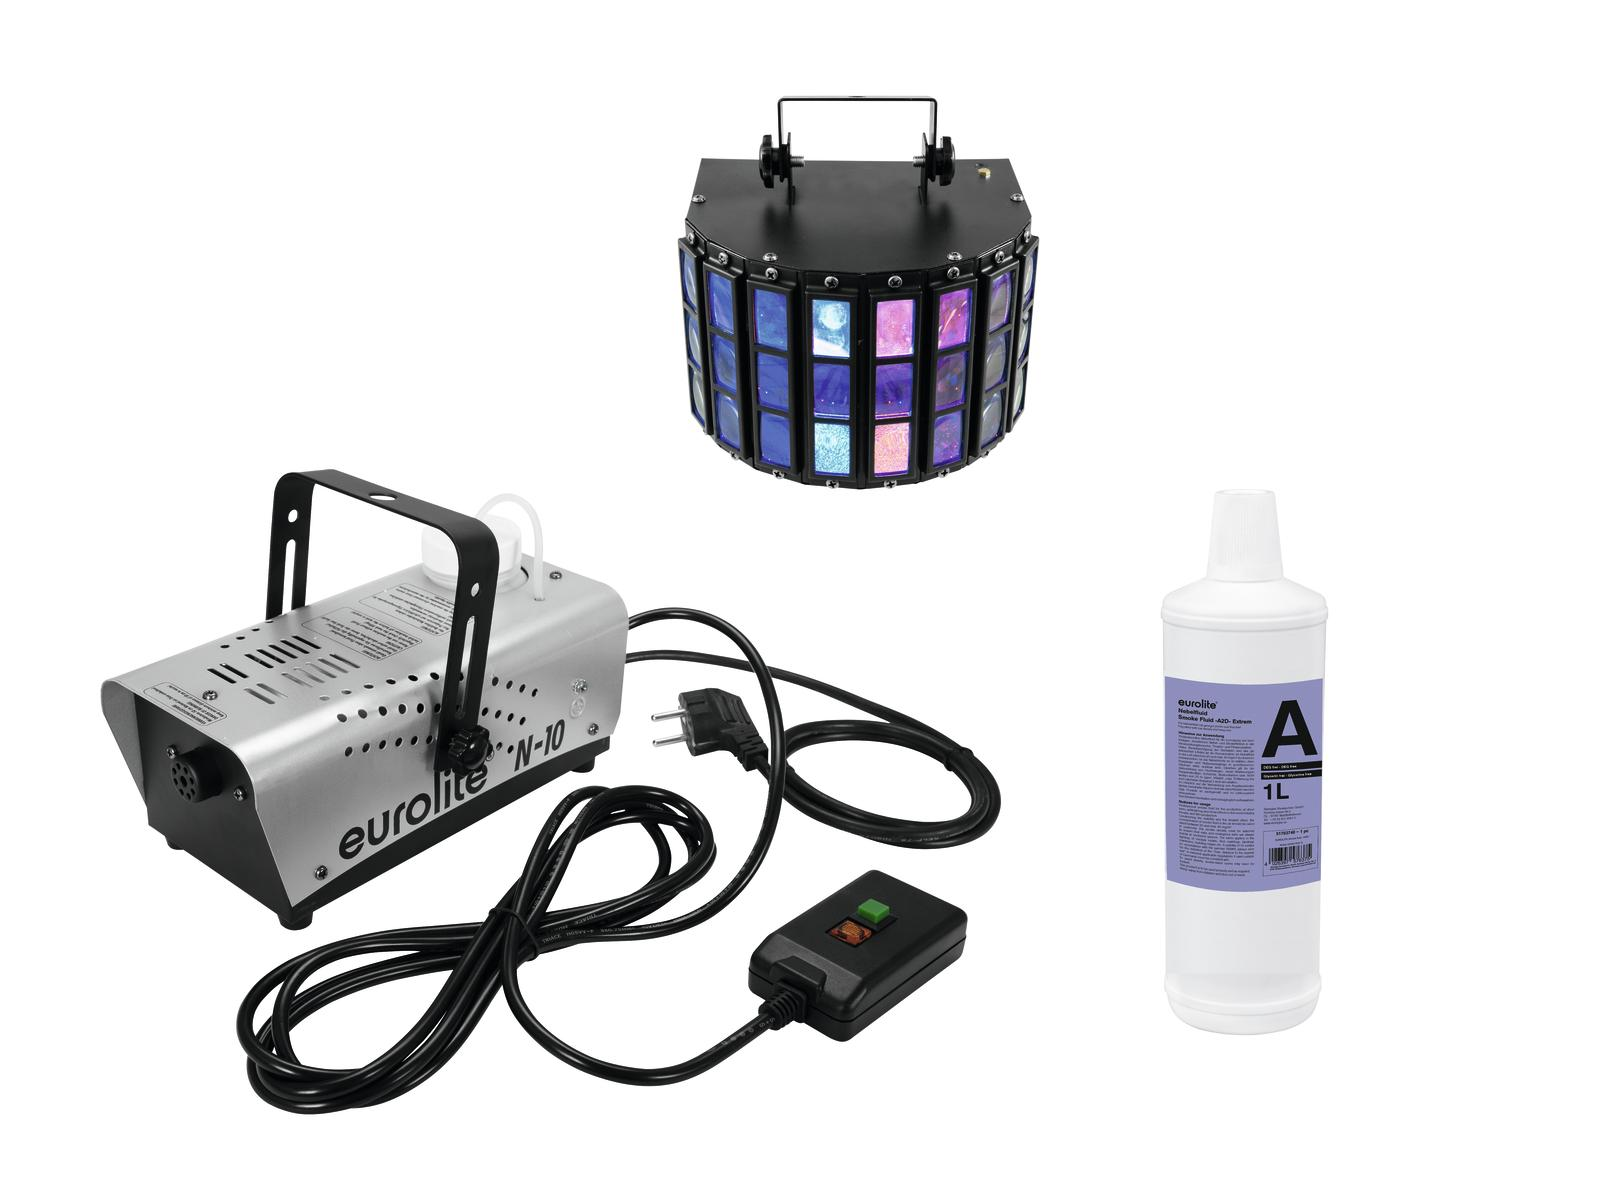 EUROLITE N Set-10 silber + A2D Liquido 1l + LED Mini D-5